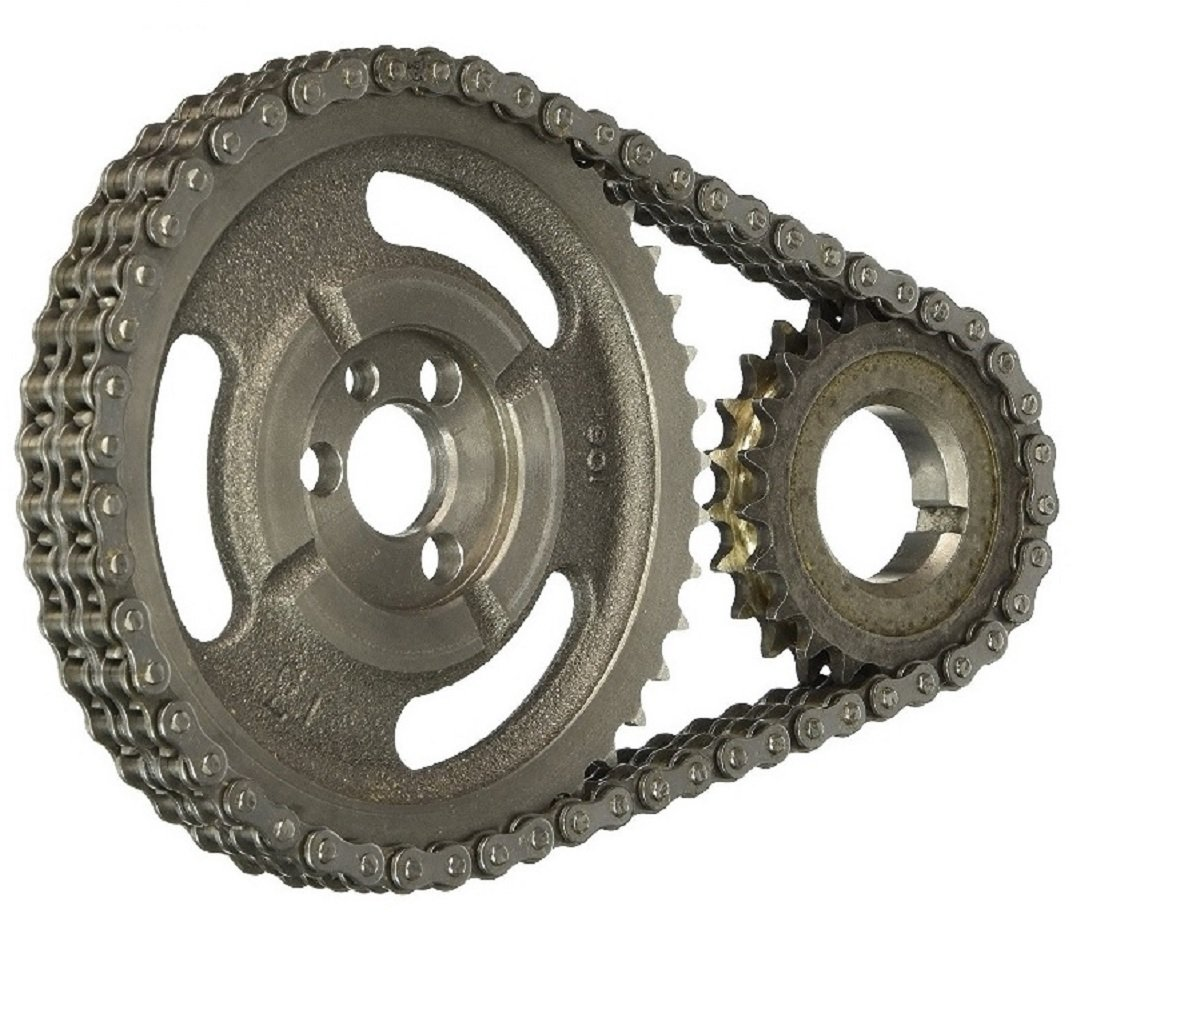 Chevy 305 307 327 350 283 400 Torque Camshaft Cam Timing Problems Lifters Kit Double Row Automotive